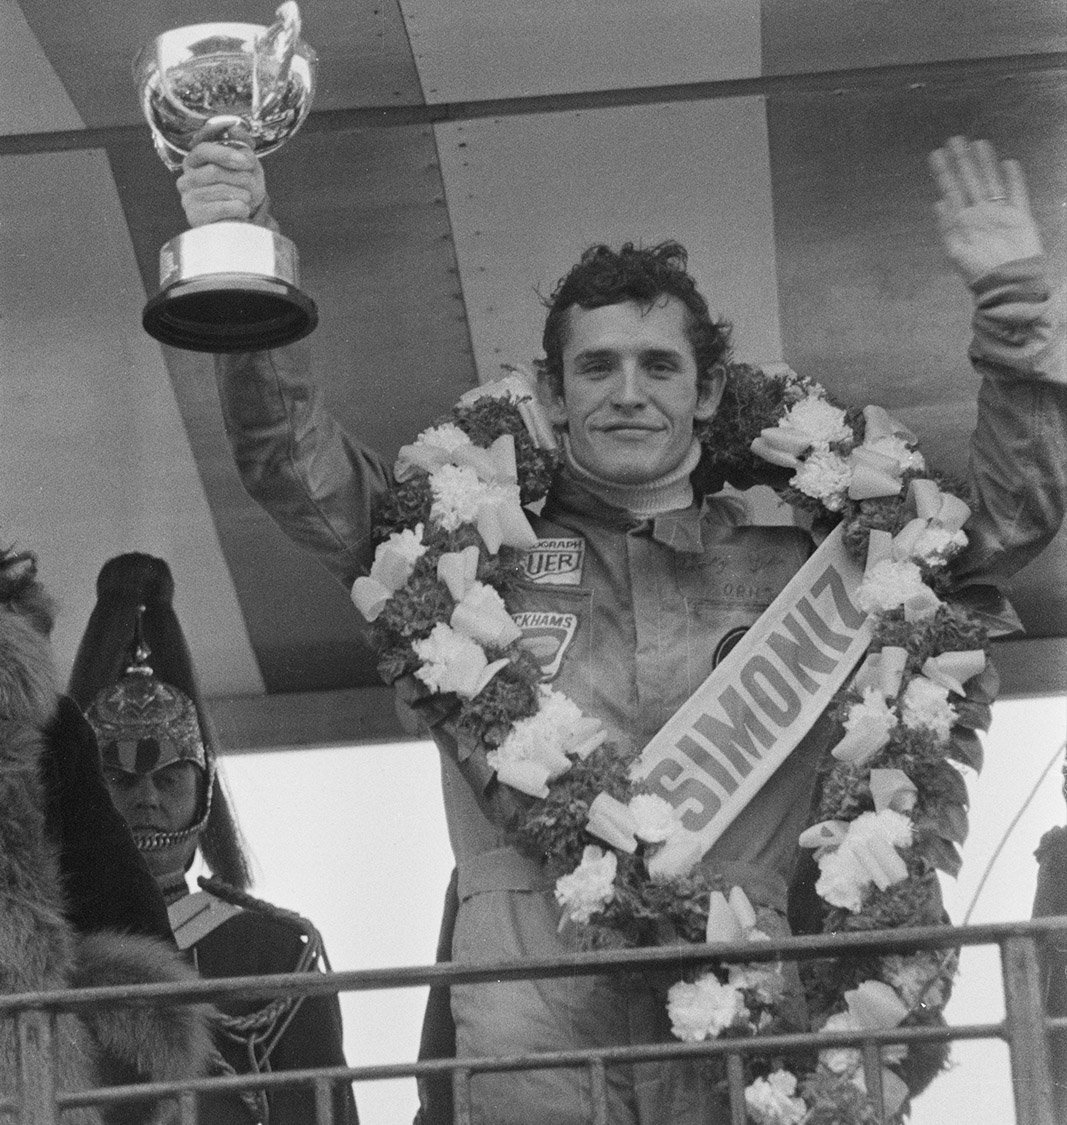 Jacky Ickx holding the winning trophy from the 1974 Race of Champions at Brands Hatch